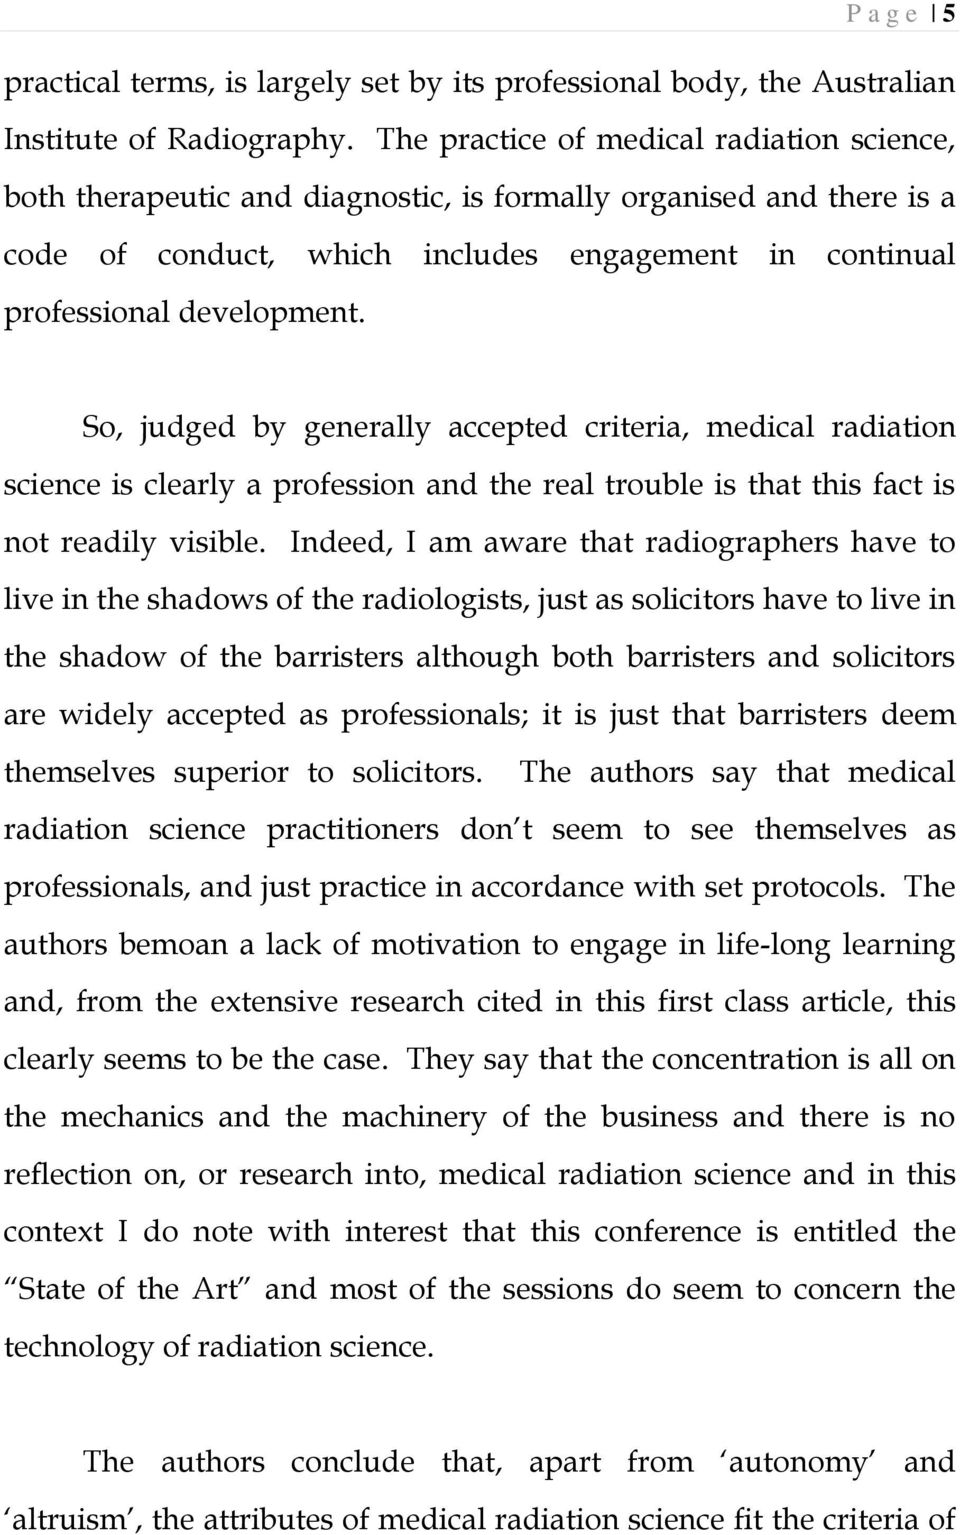 So, judged by generally accepted criteria, medical radiation science is clearly a profession and the real trouble is that this fact is not readily visible.